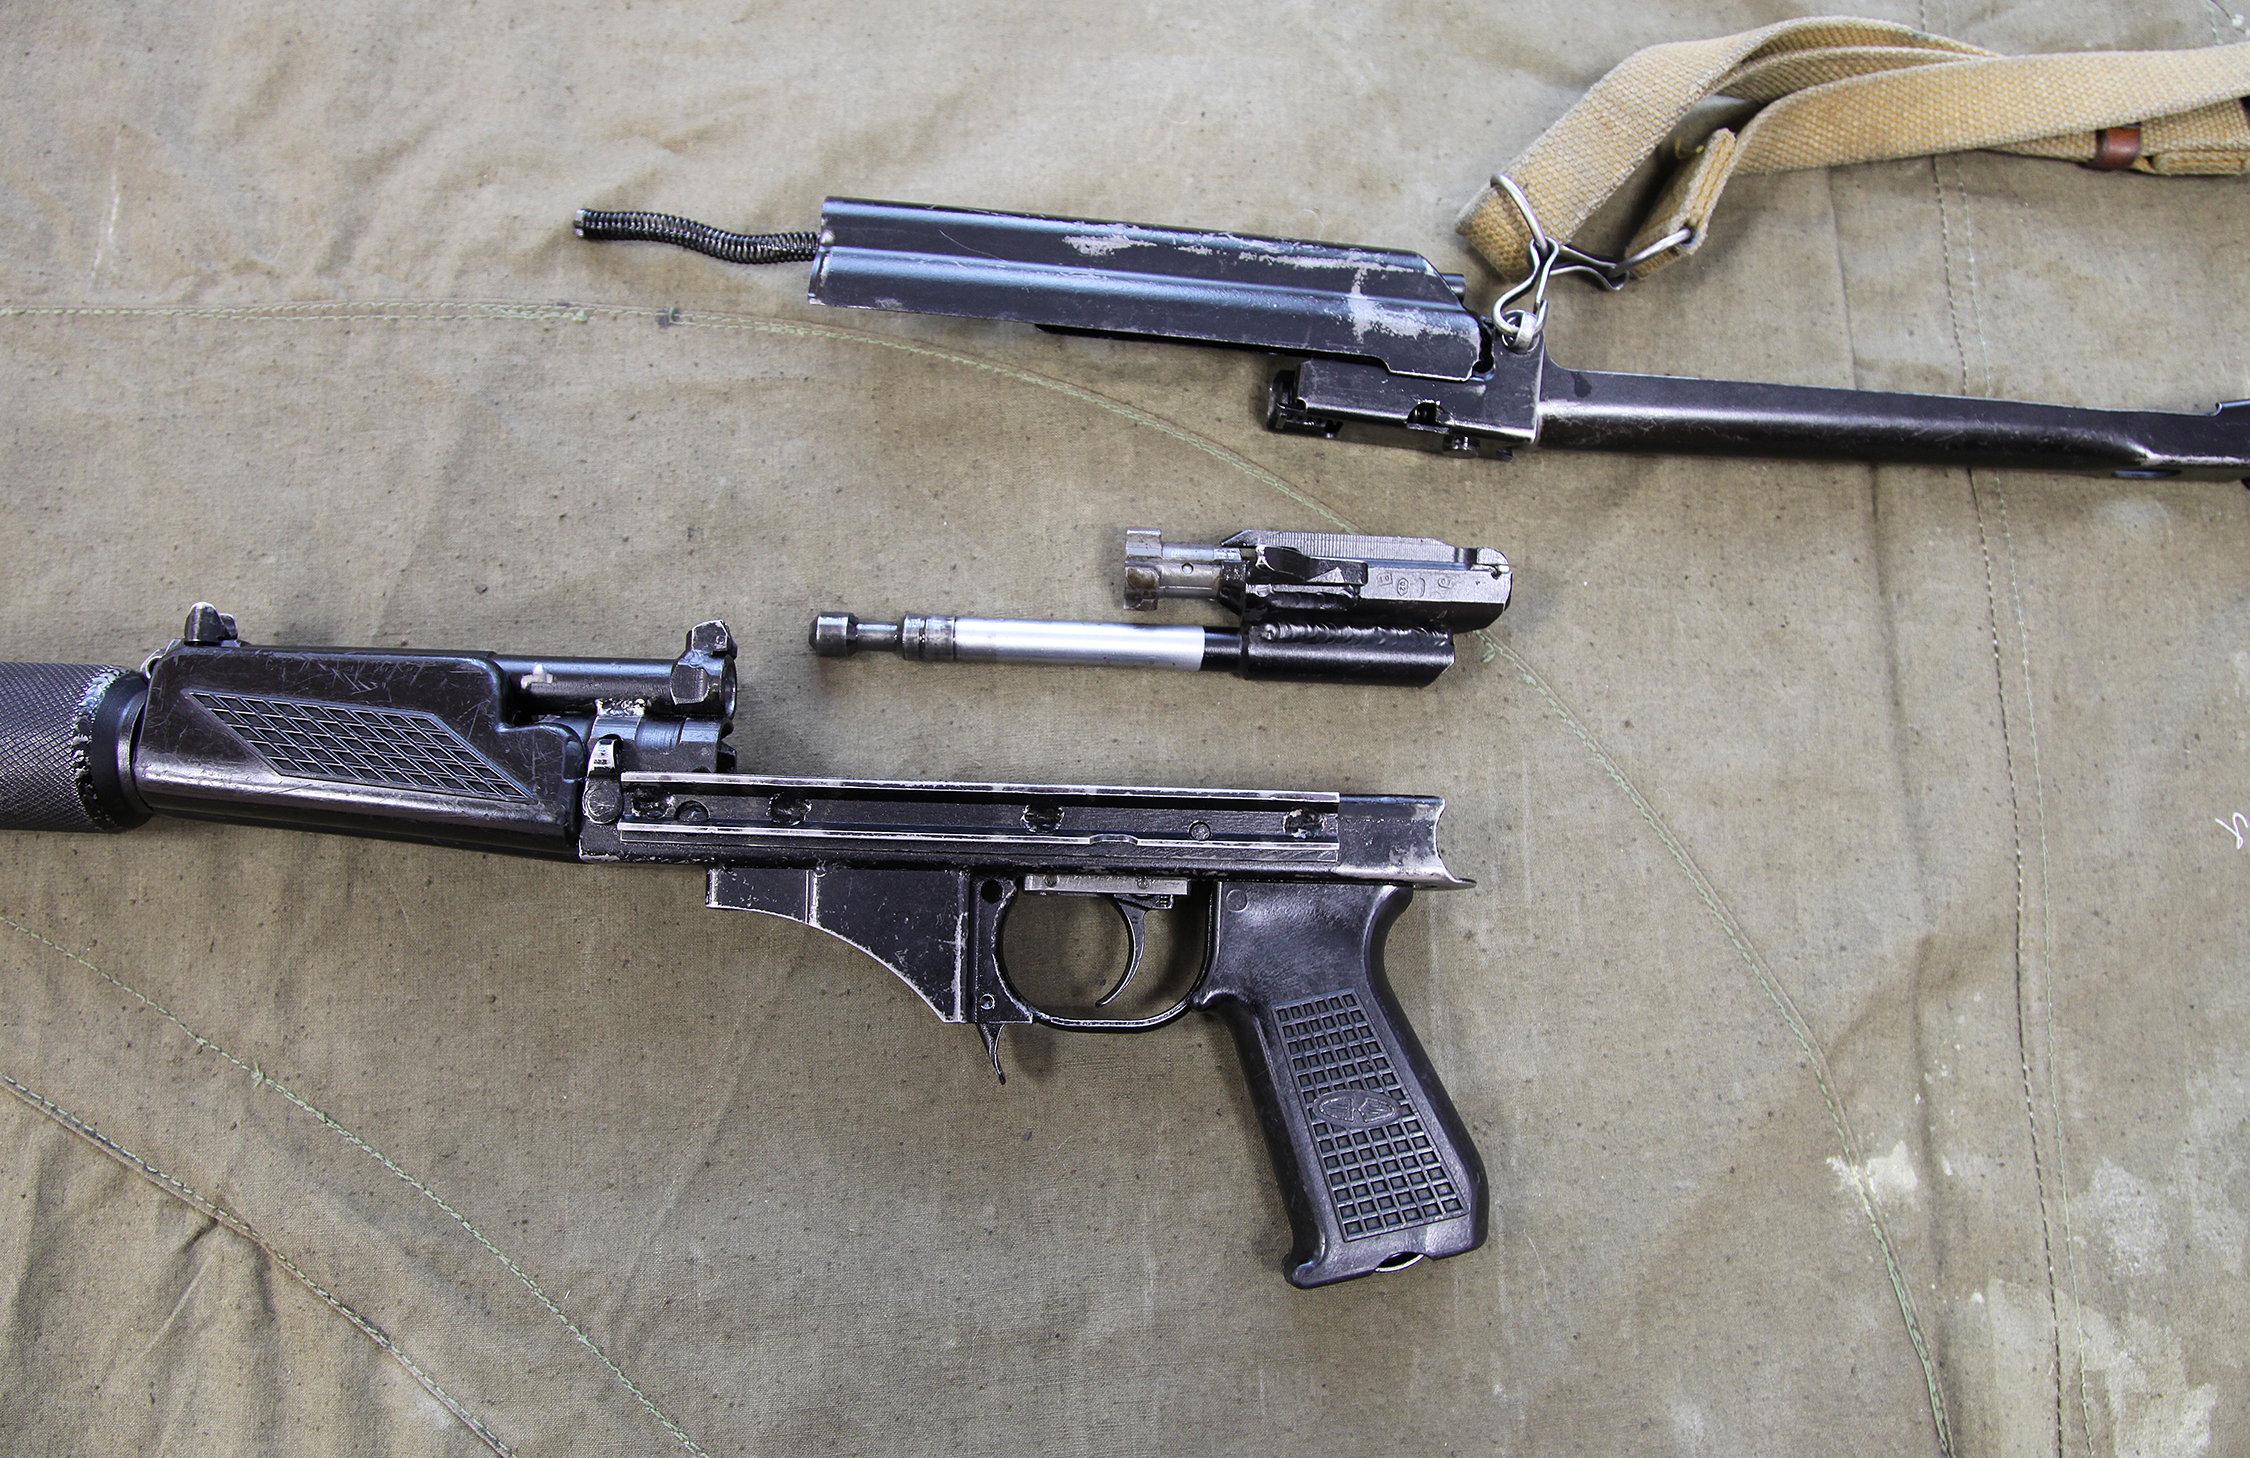 File:9mm KBP 9A-91 compact assault rifle - 42.jpg